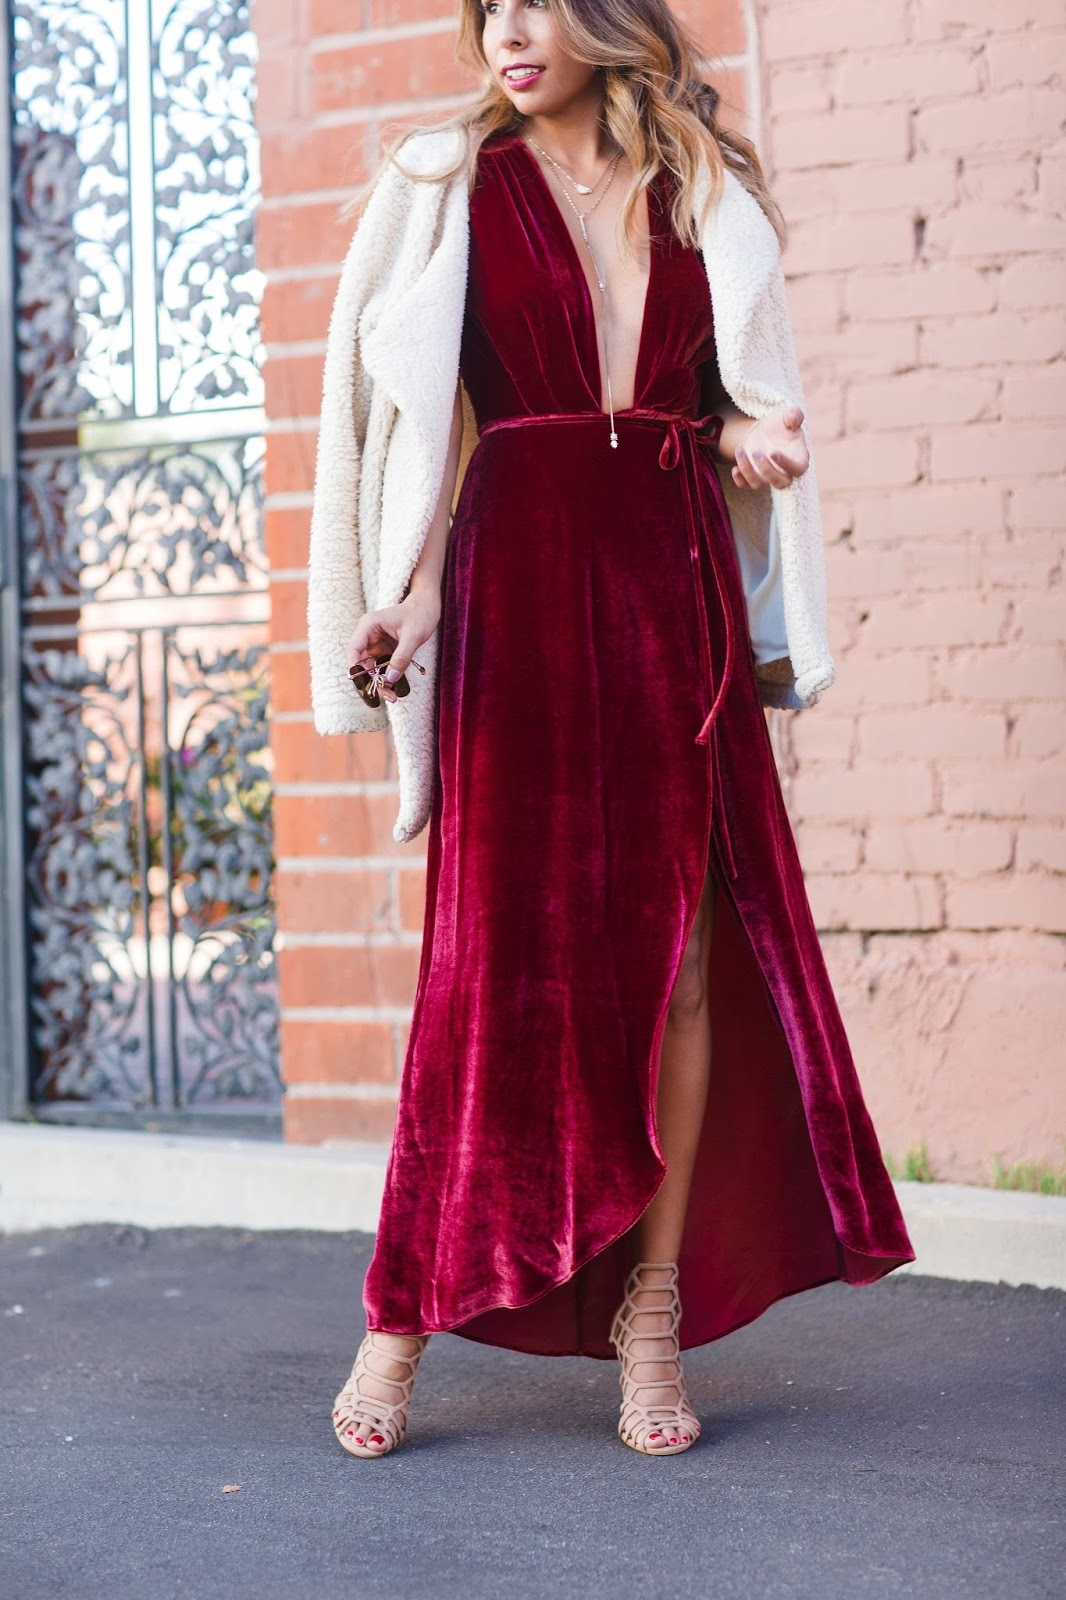 how to wear velvet dress, velvet reformation dress, holiday party outfit ideas